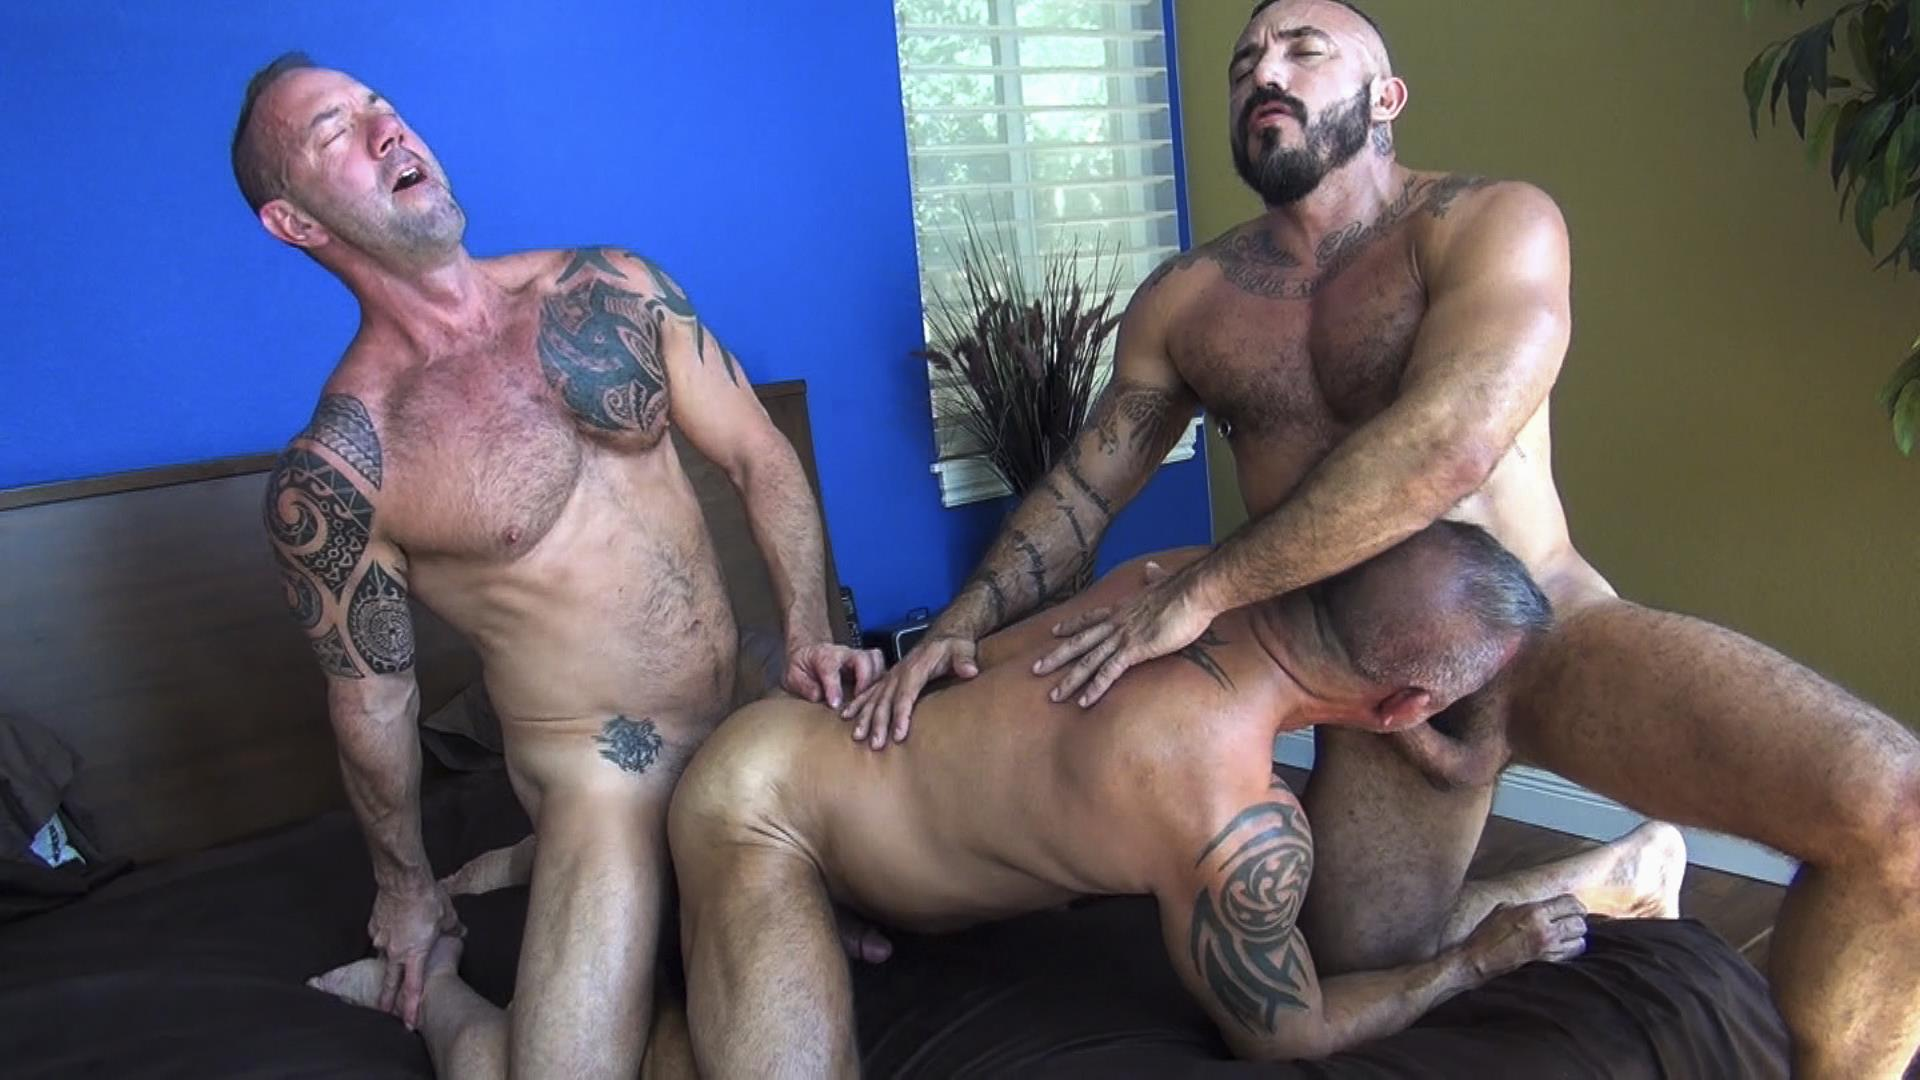 Raw-Fuck-Club-Alessio-Romero-and-Jon-Galt-and-Vic-Rocco-Hairy-Muscle-Daddy-Bareback-Amateur-Gay-Porn-3 Hairy Muscle Daddy Threeway Double Bareback Penetration